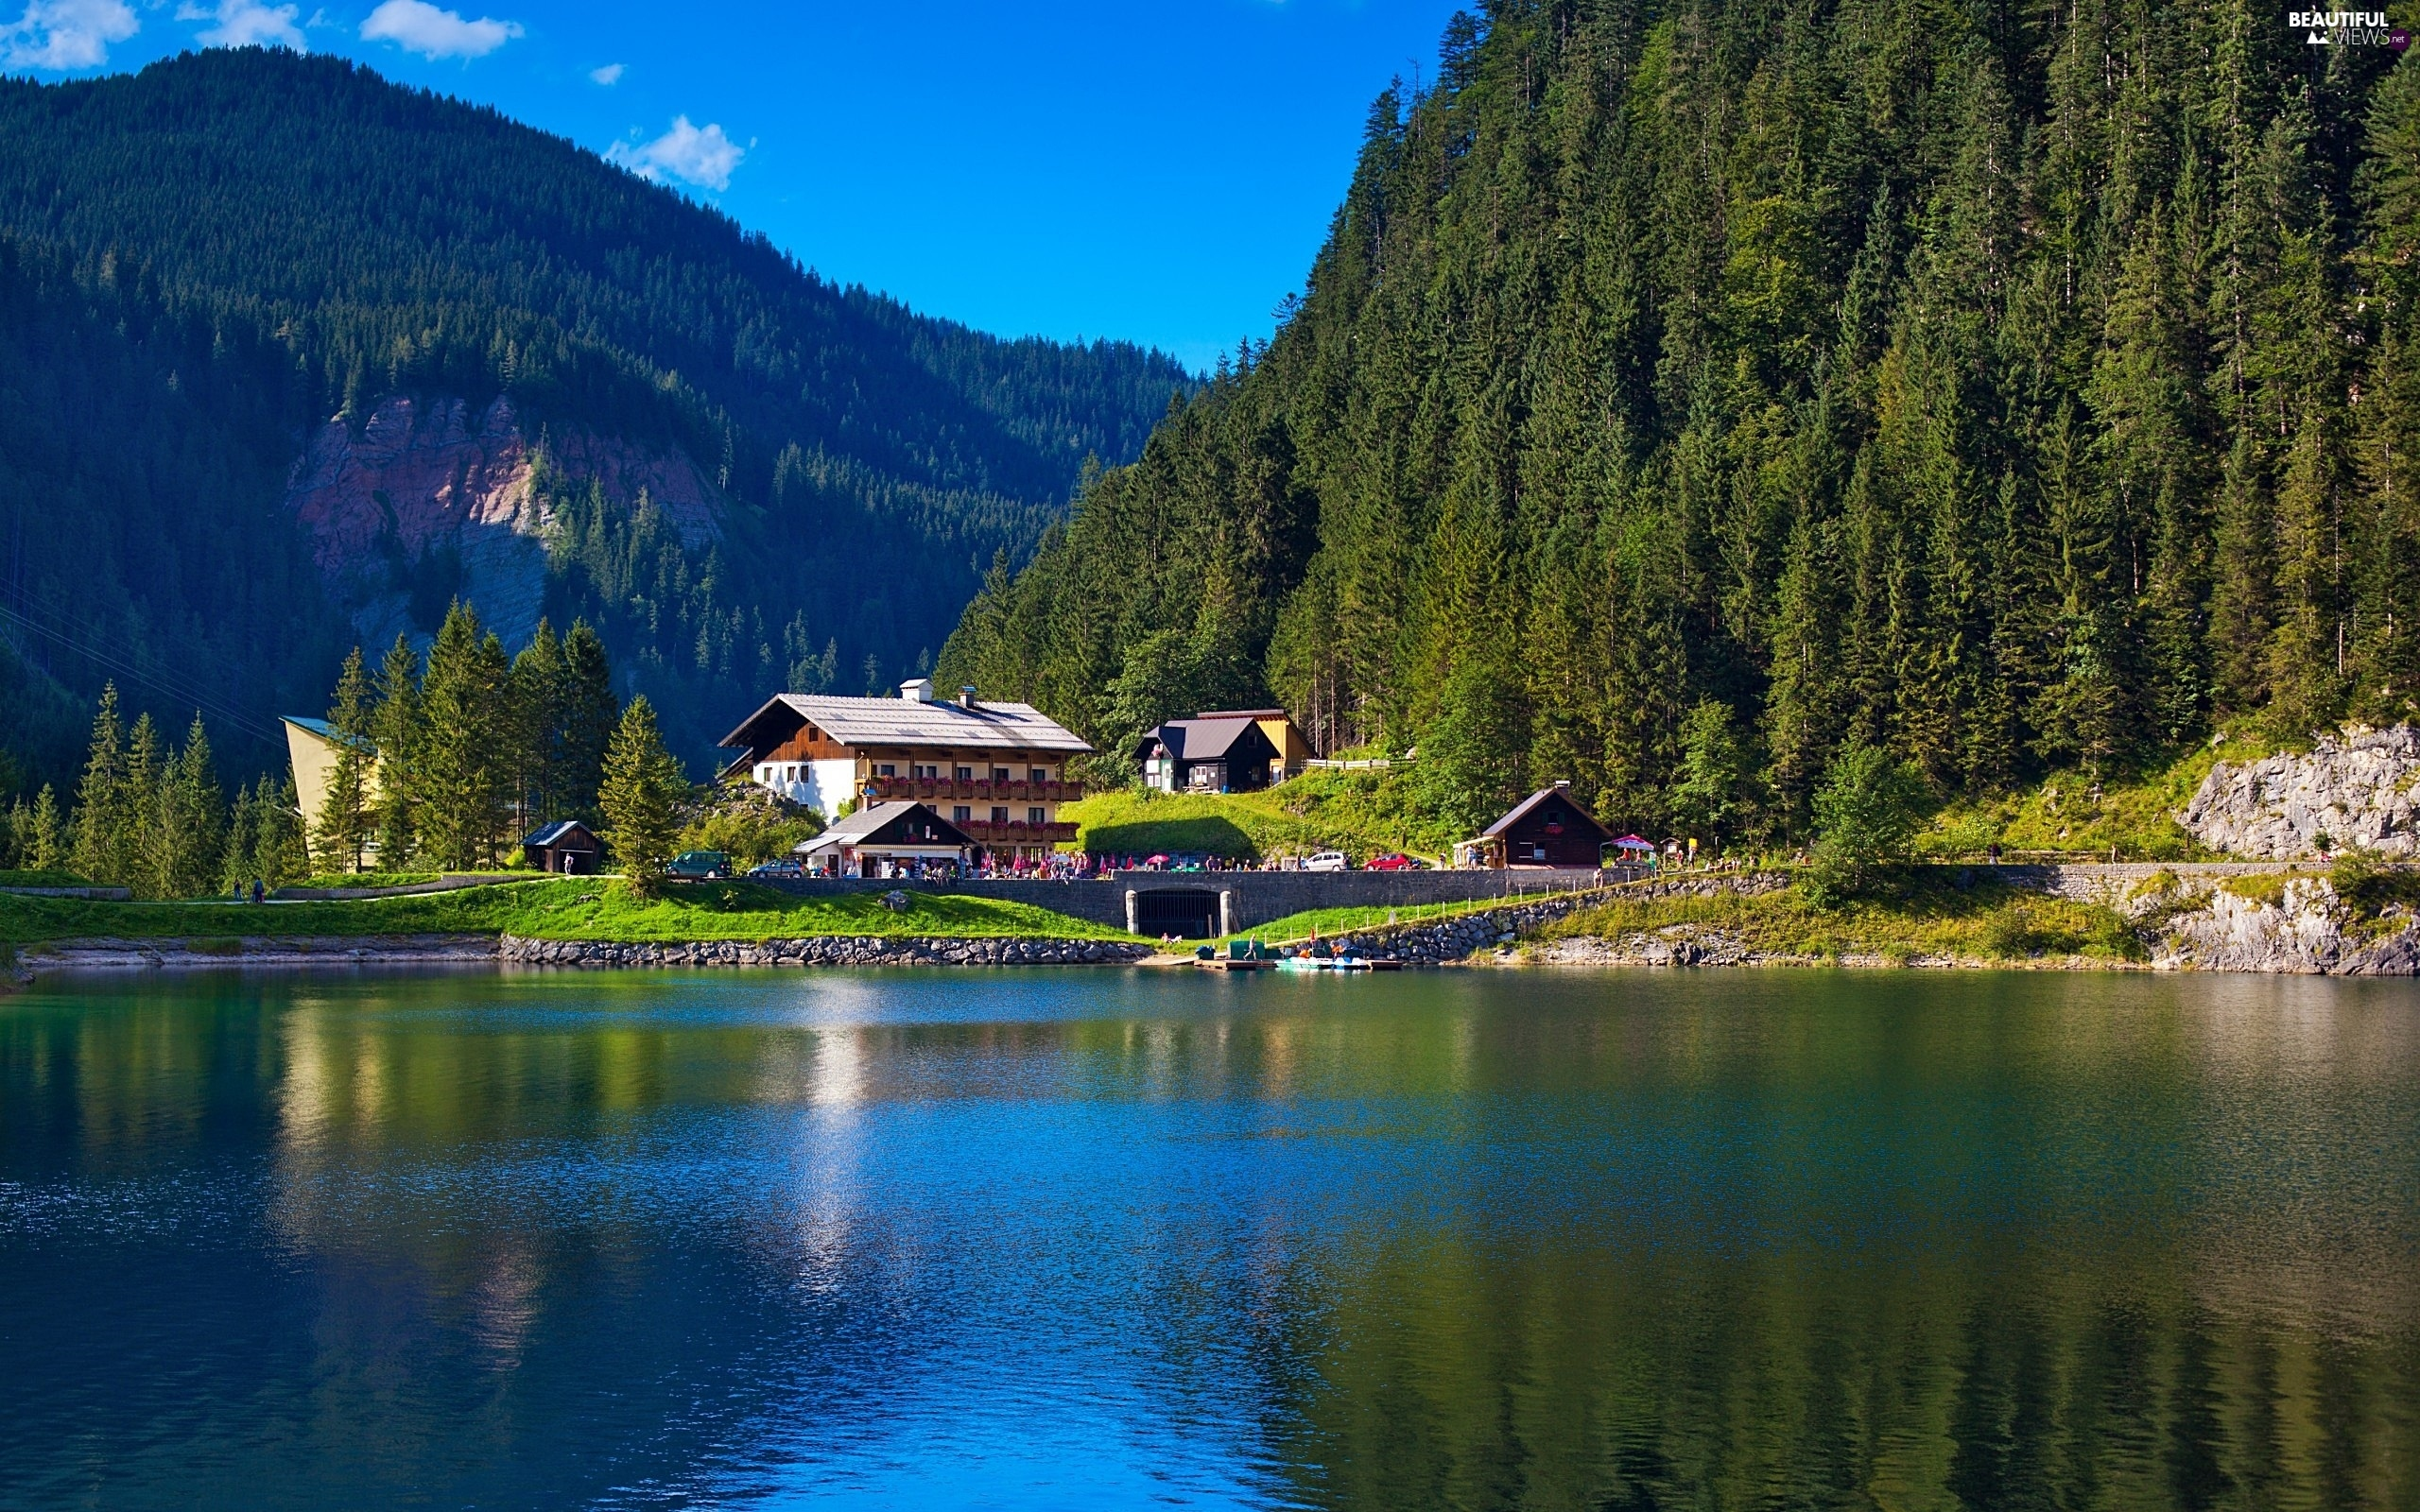 Woods alps houses landscape lake mountains for Nice house hd